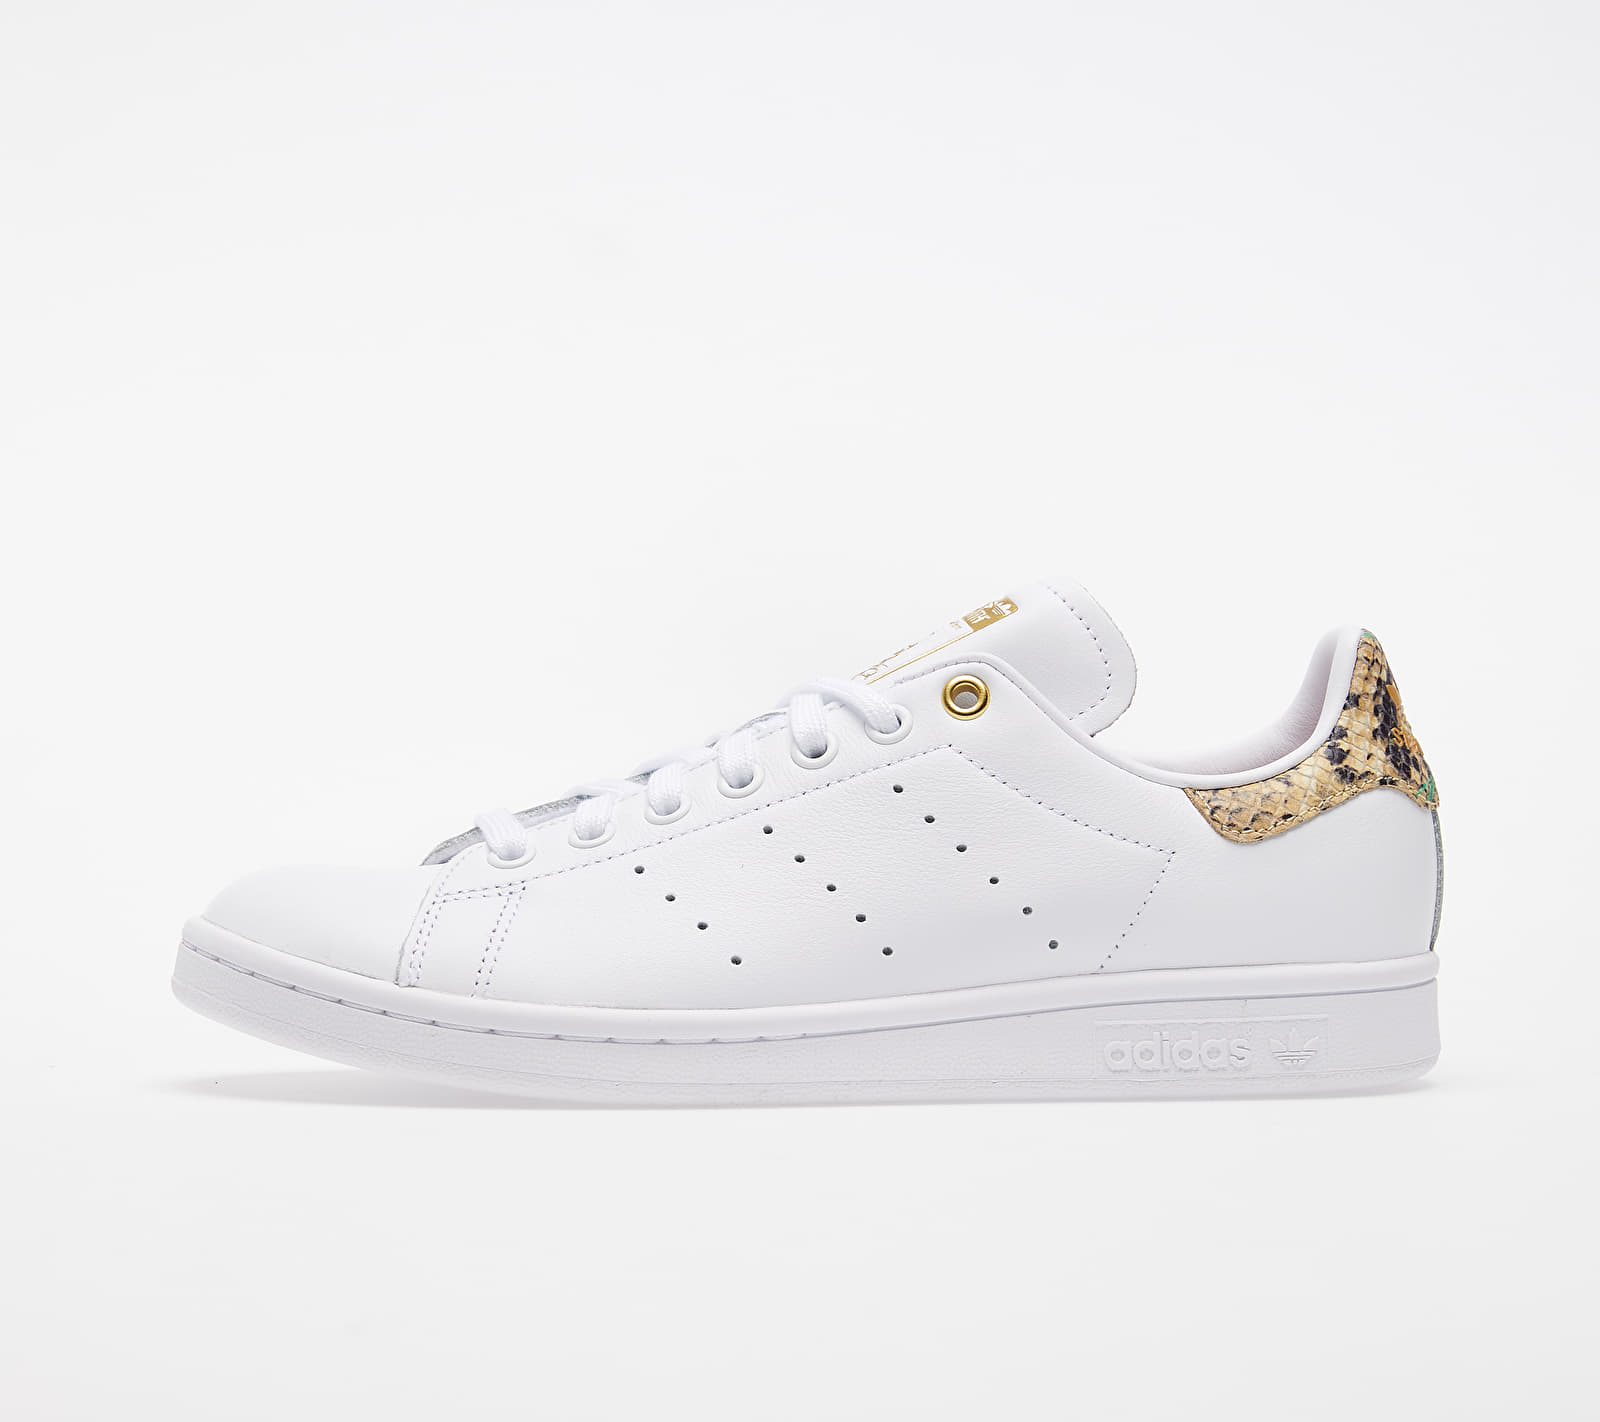 adidas Stan Smith W Ftw White/ Scarlet/ Gold Metalic EUR 37 1/3